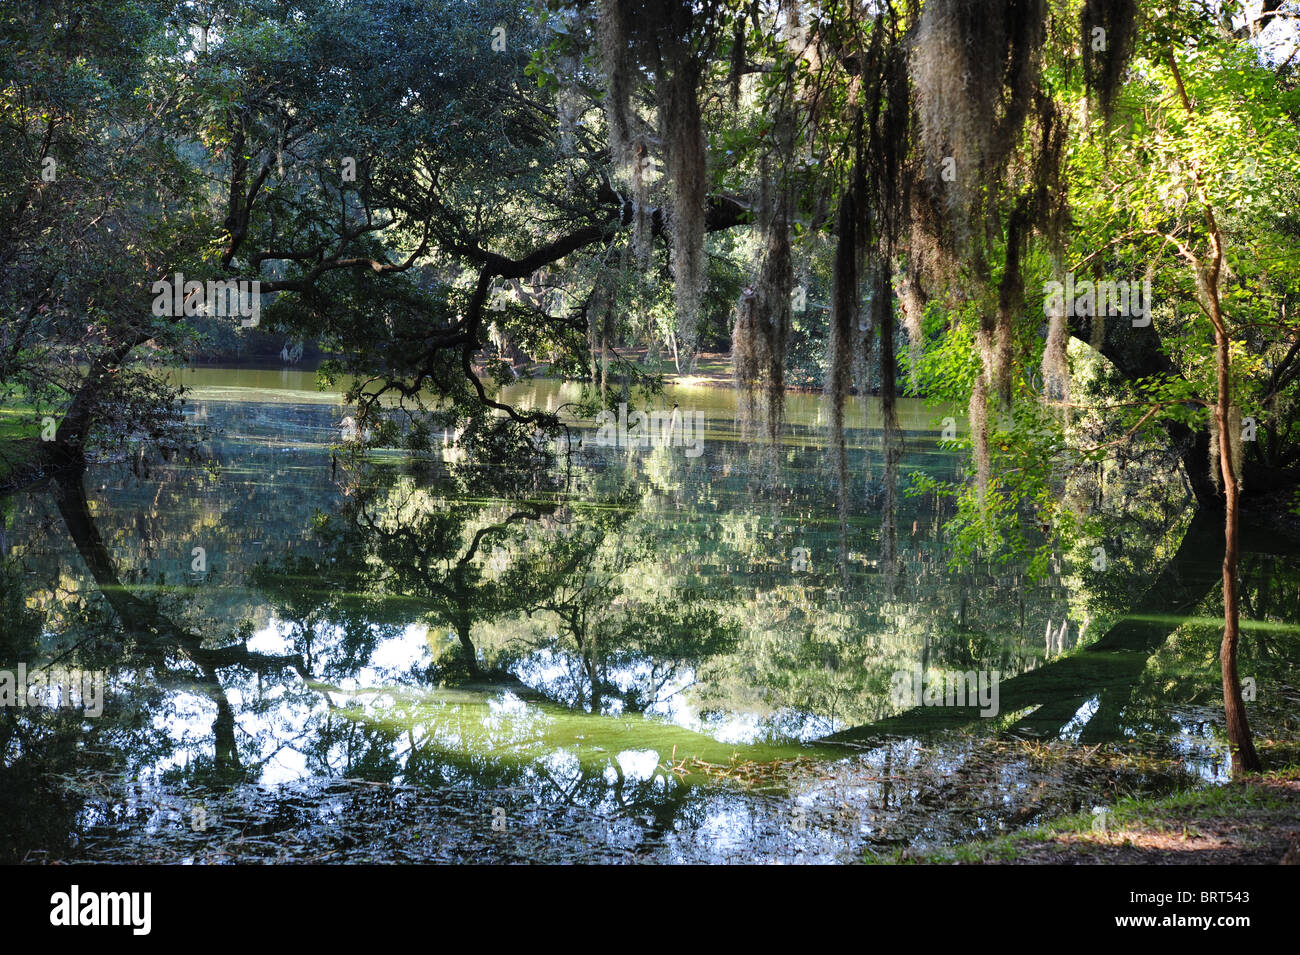 Mirrored Reflection of moss and tree branches in swamp waters at Charleston Landing, SC State Park, USA - Stock Image